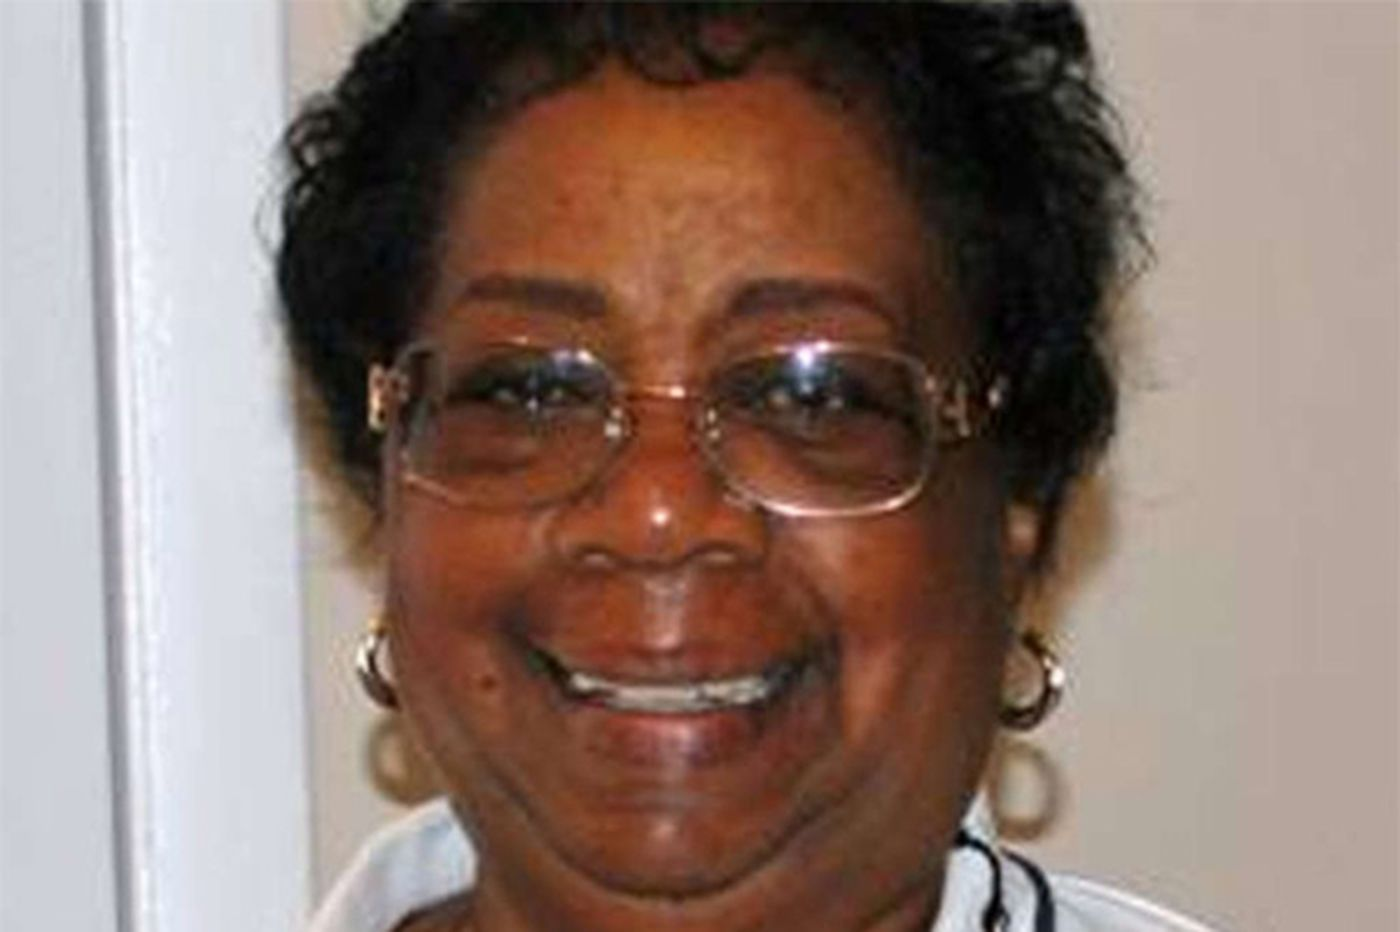 Marian Cousins, 73, guidance counselor at Willingboro High